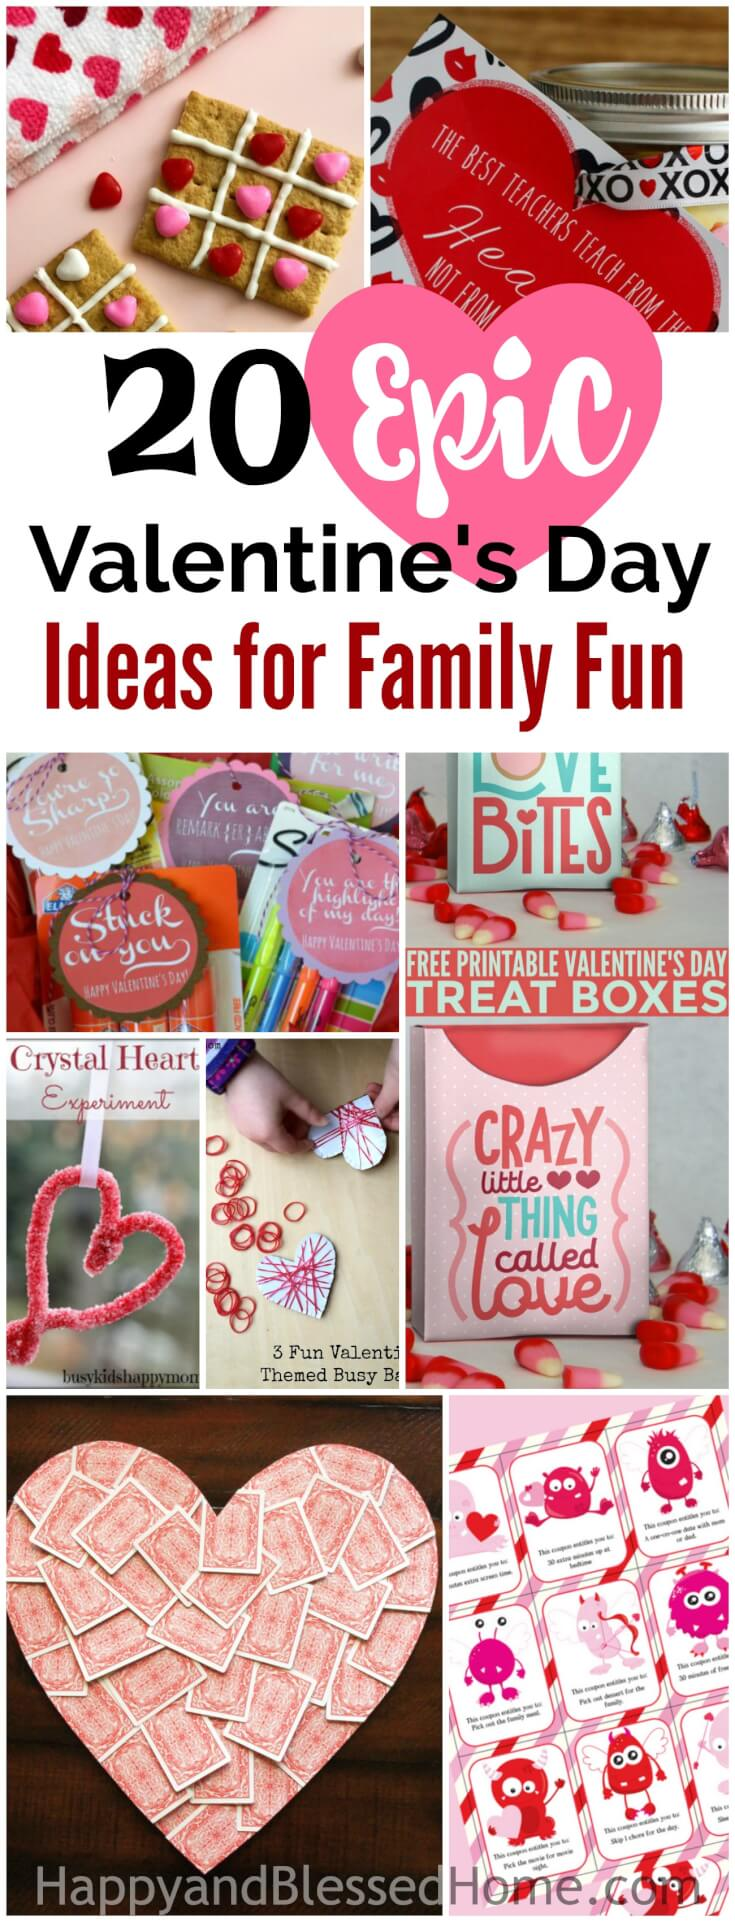 20 Epic Valentine's Day Ideas for Family Fun includes loads of family fun activities - party menus, treat toppers,  scavenger hunt ideas, free printables, easy recipes, and more. There are FREE Valentine's Day Cards Kids can Make, STEM activities with crystals and fizzes, Valentine's Day gift ideas for teachers, busy bag ideas, scripture memory, Raspberry Scones and Cinnamon Rolls, and ideas to help teach kids about love. There's a DIY gift box and sharpie mug, Unicorn Valentine's Day cards, Red Velvet Chocolate Scented play-doh and gift idea, wall art, coupons, and Cheerios Balls.